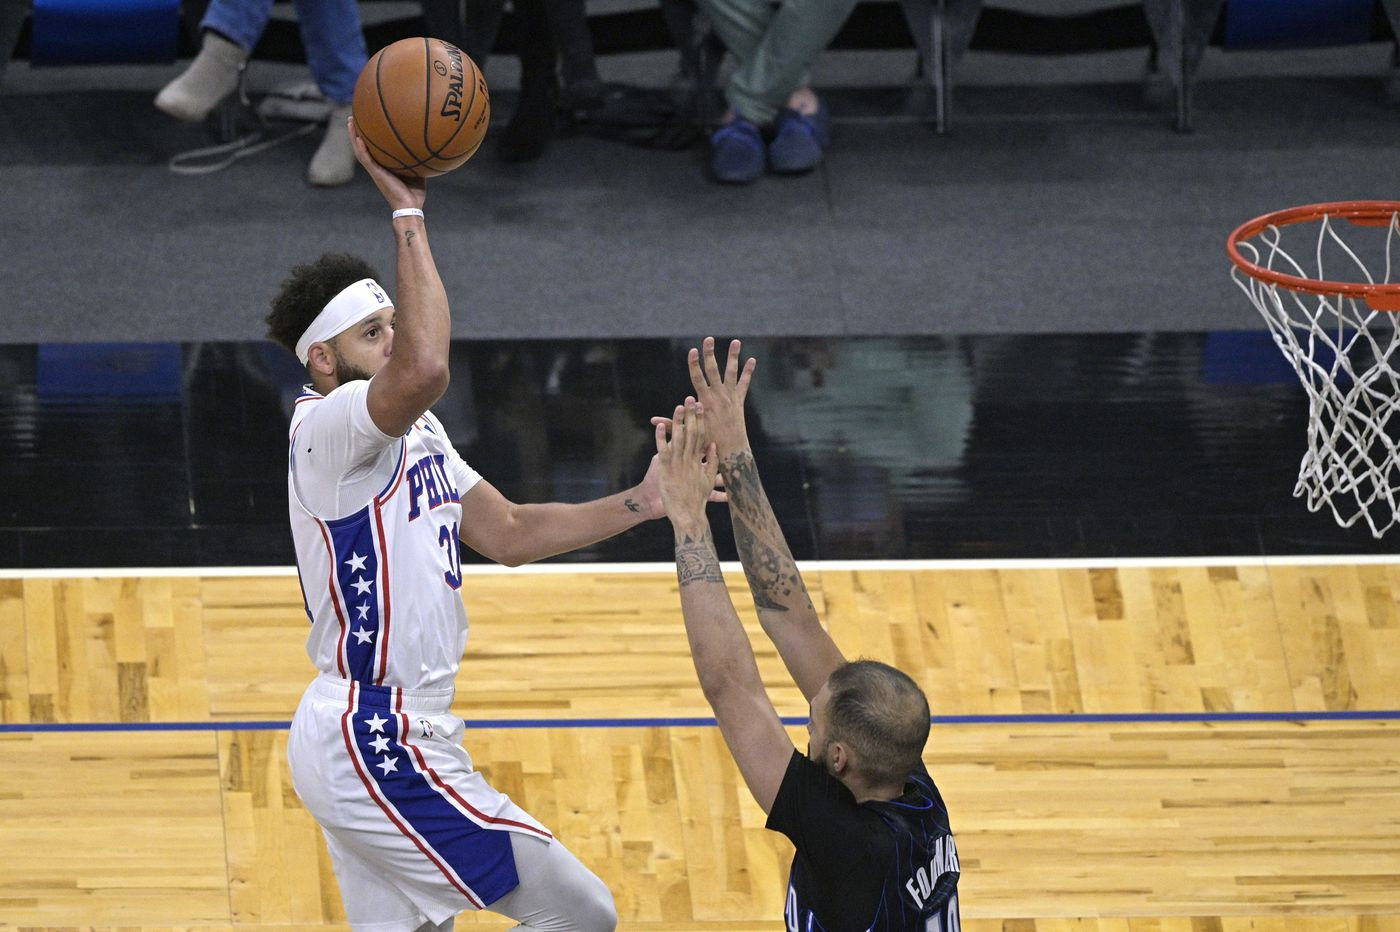 Looking at a tough season, the Sixers welcomed a breather against Orlando